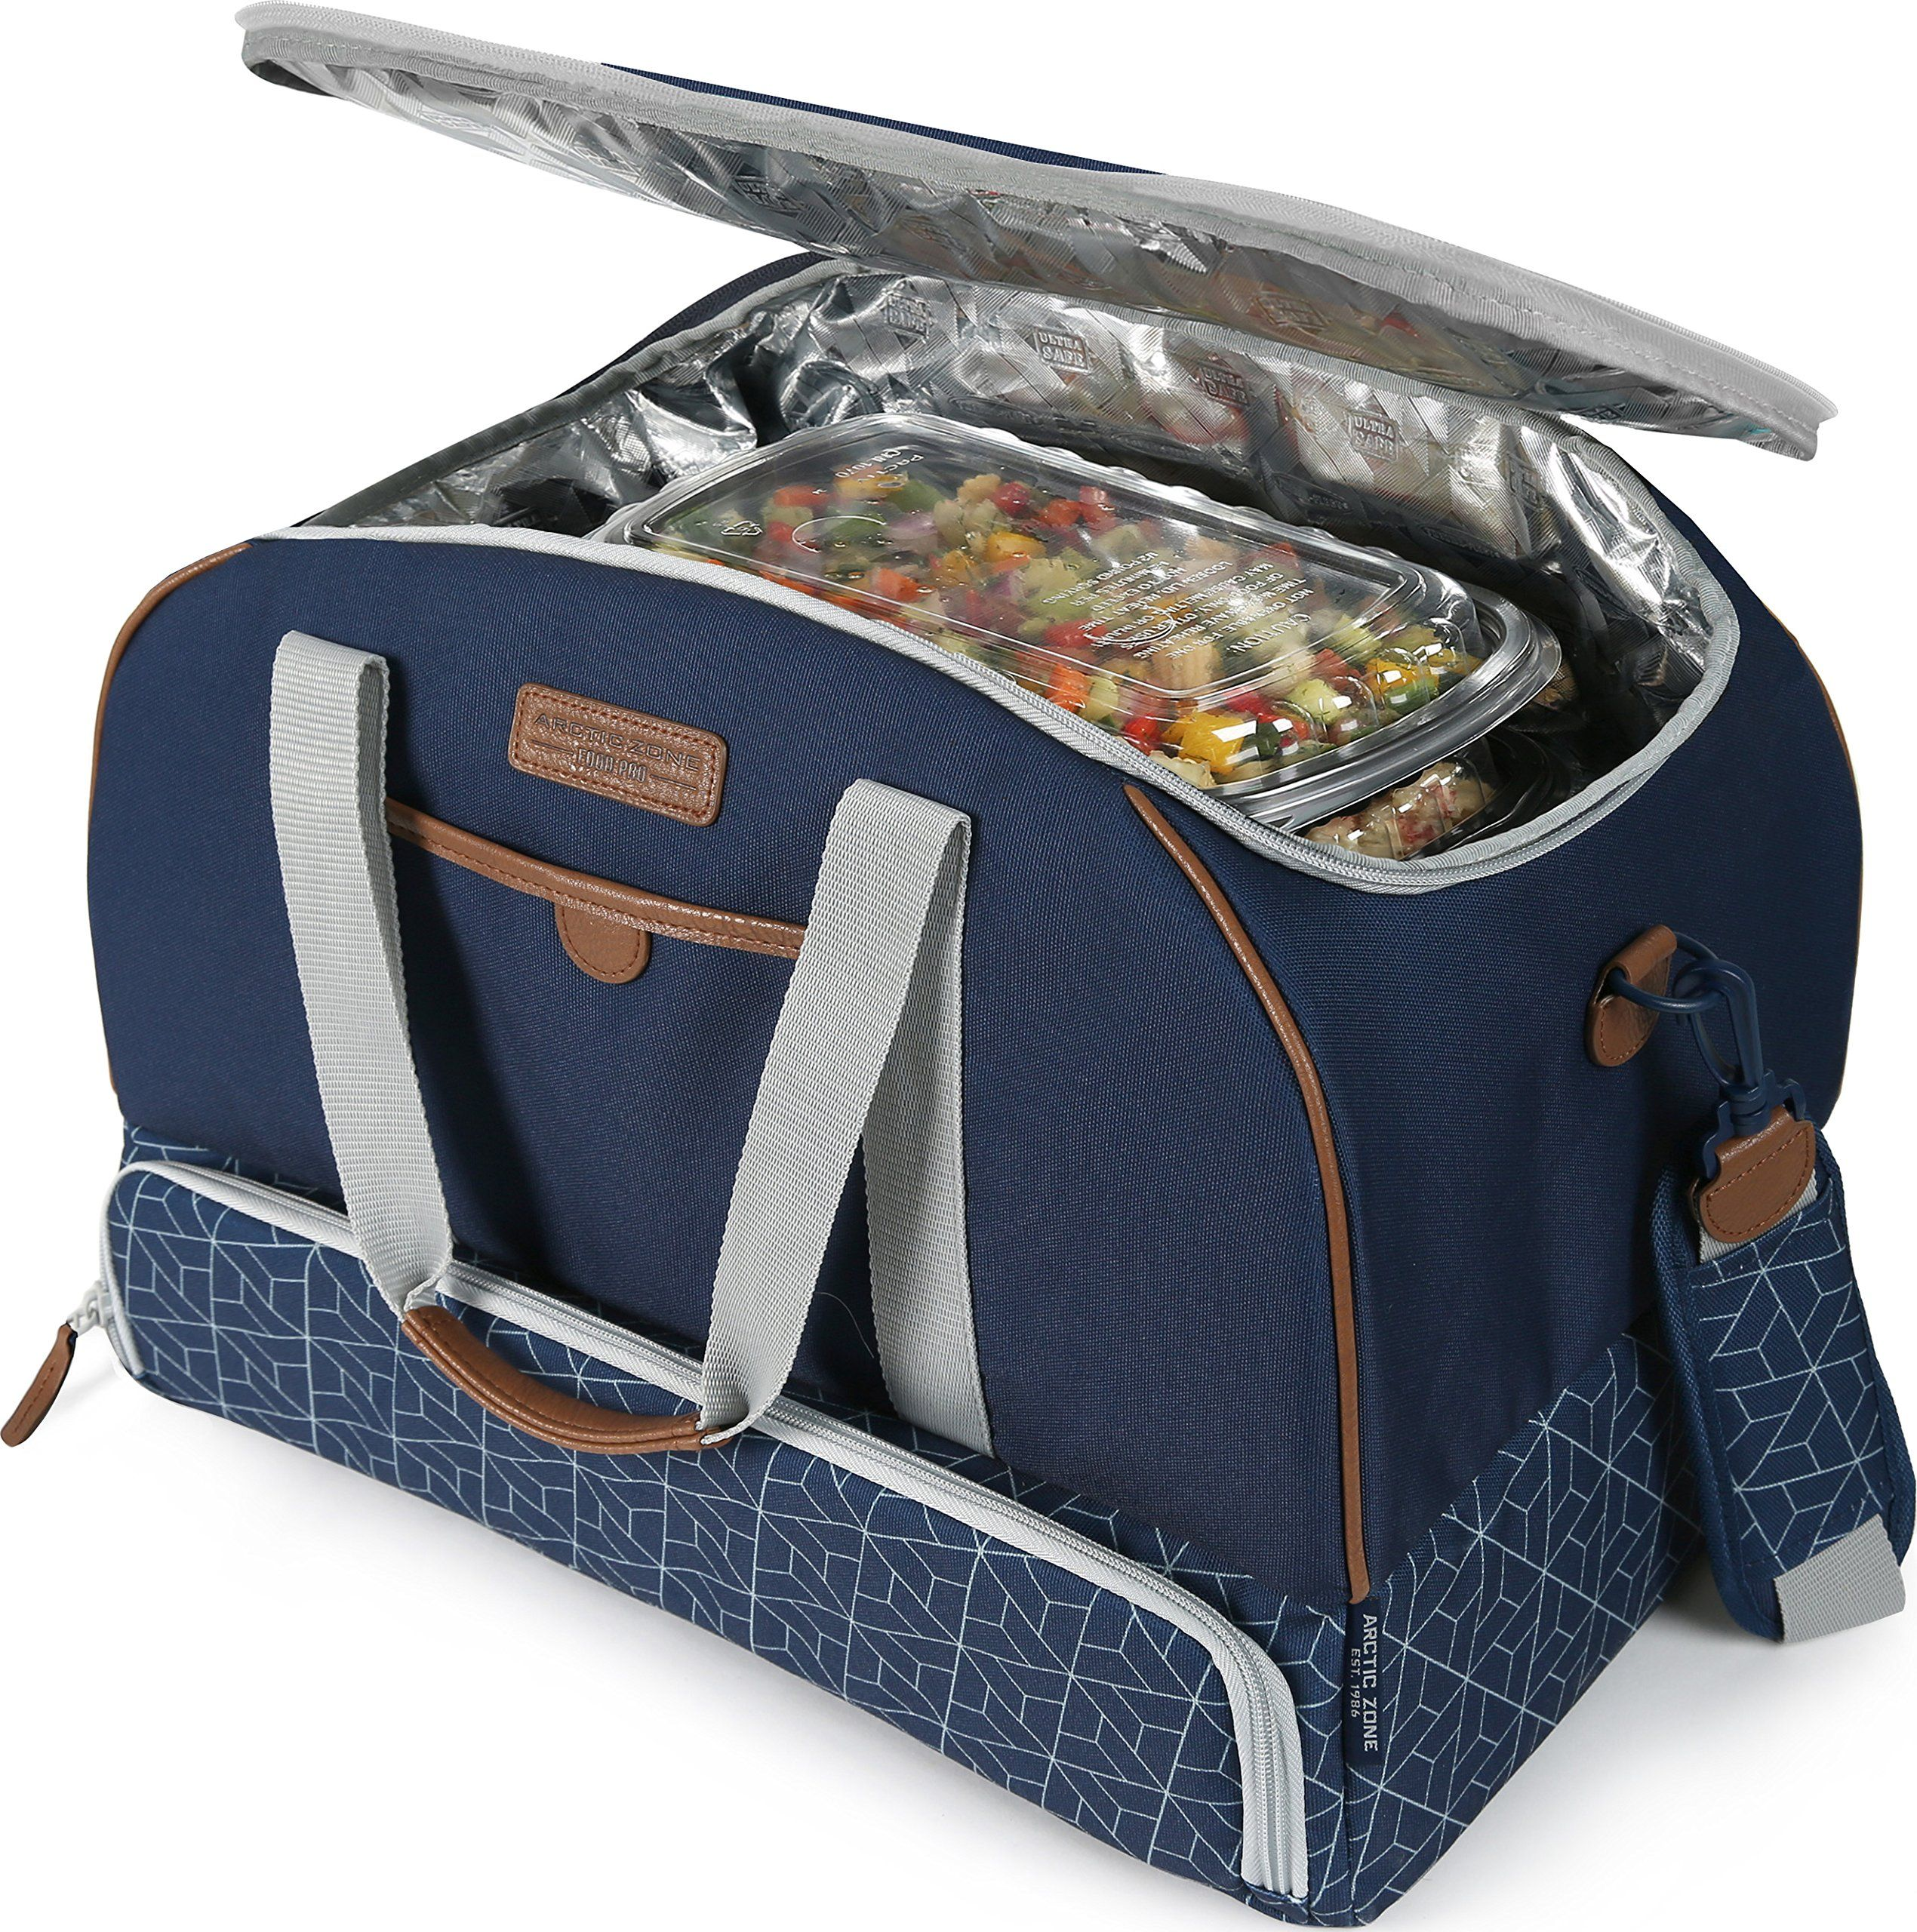 Arctic Zone 2022IL15284B Insulated Picnic Carrier Navy